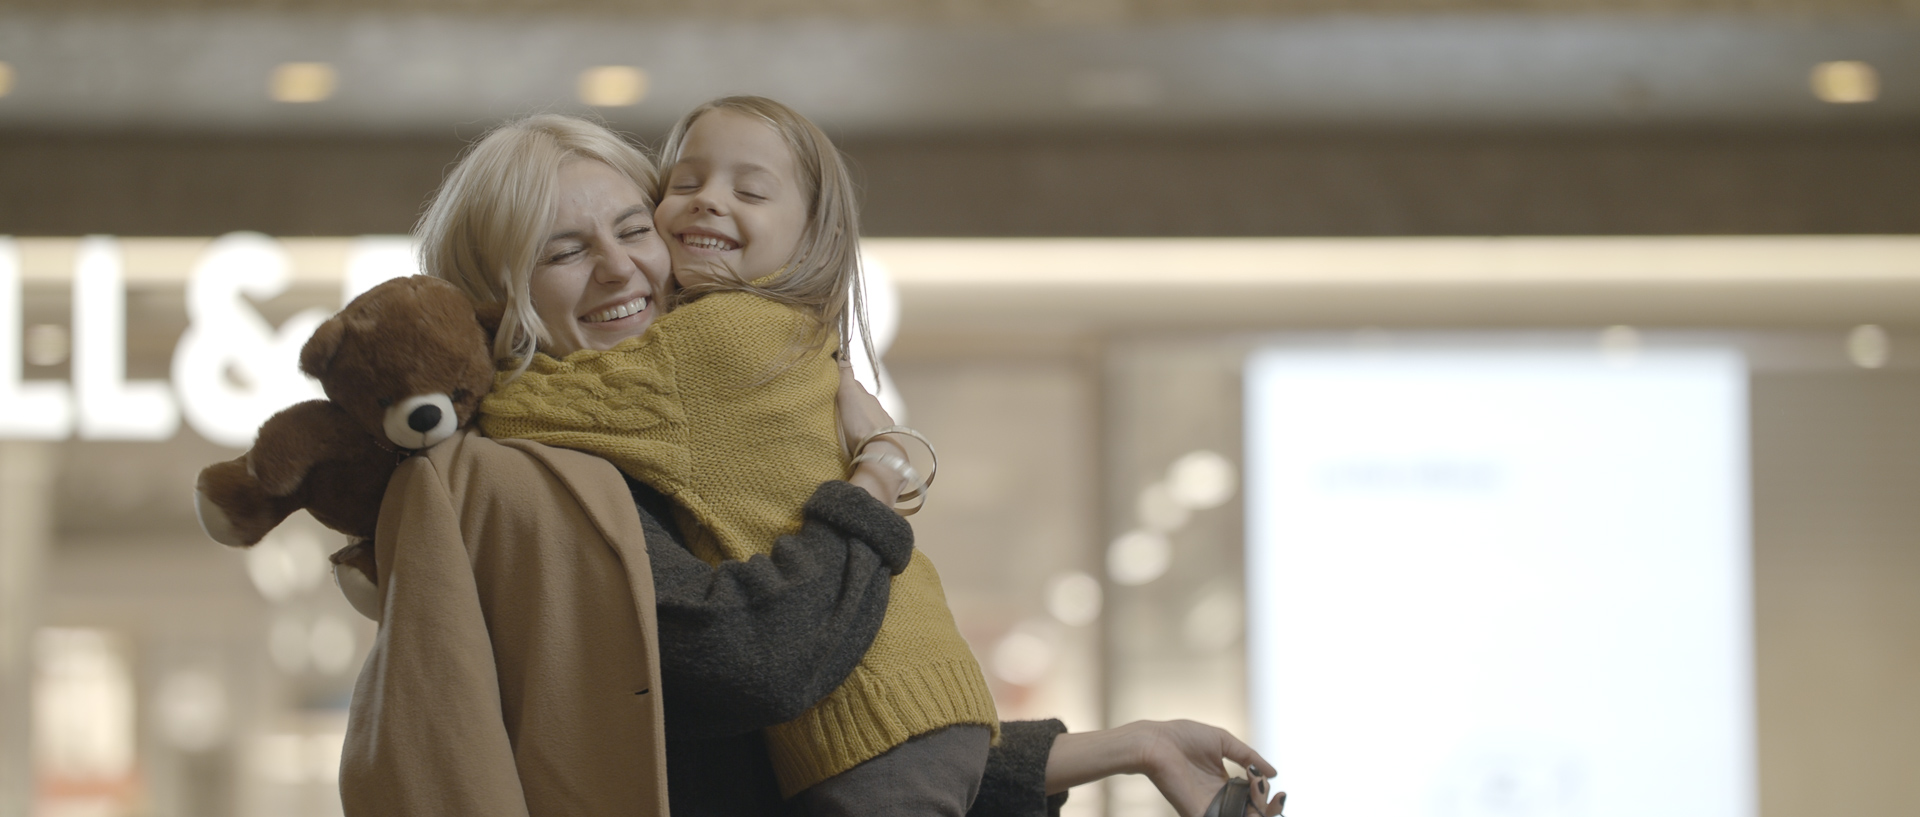 mother and daughter with teddy bear at iulius town timisoara on christmas popotam productions video agency before color grading